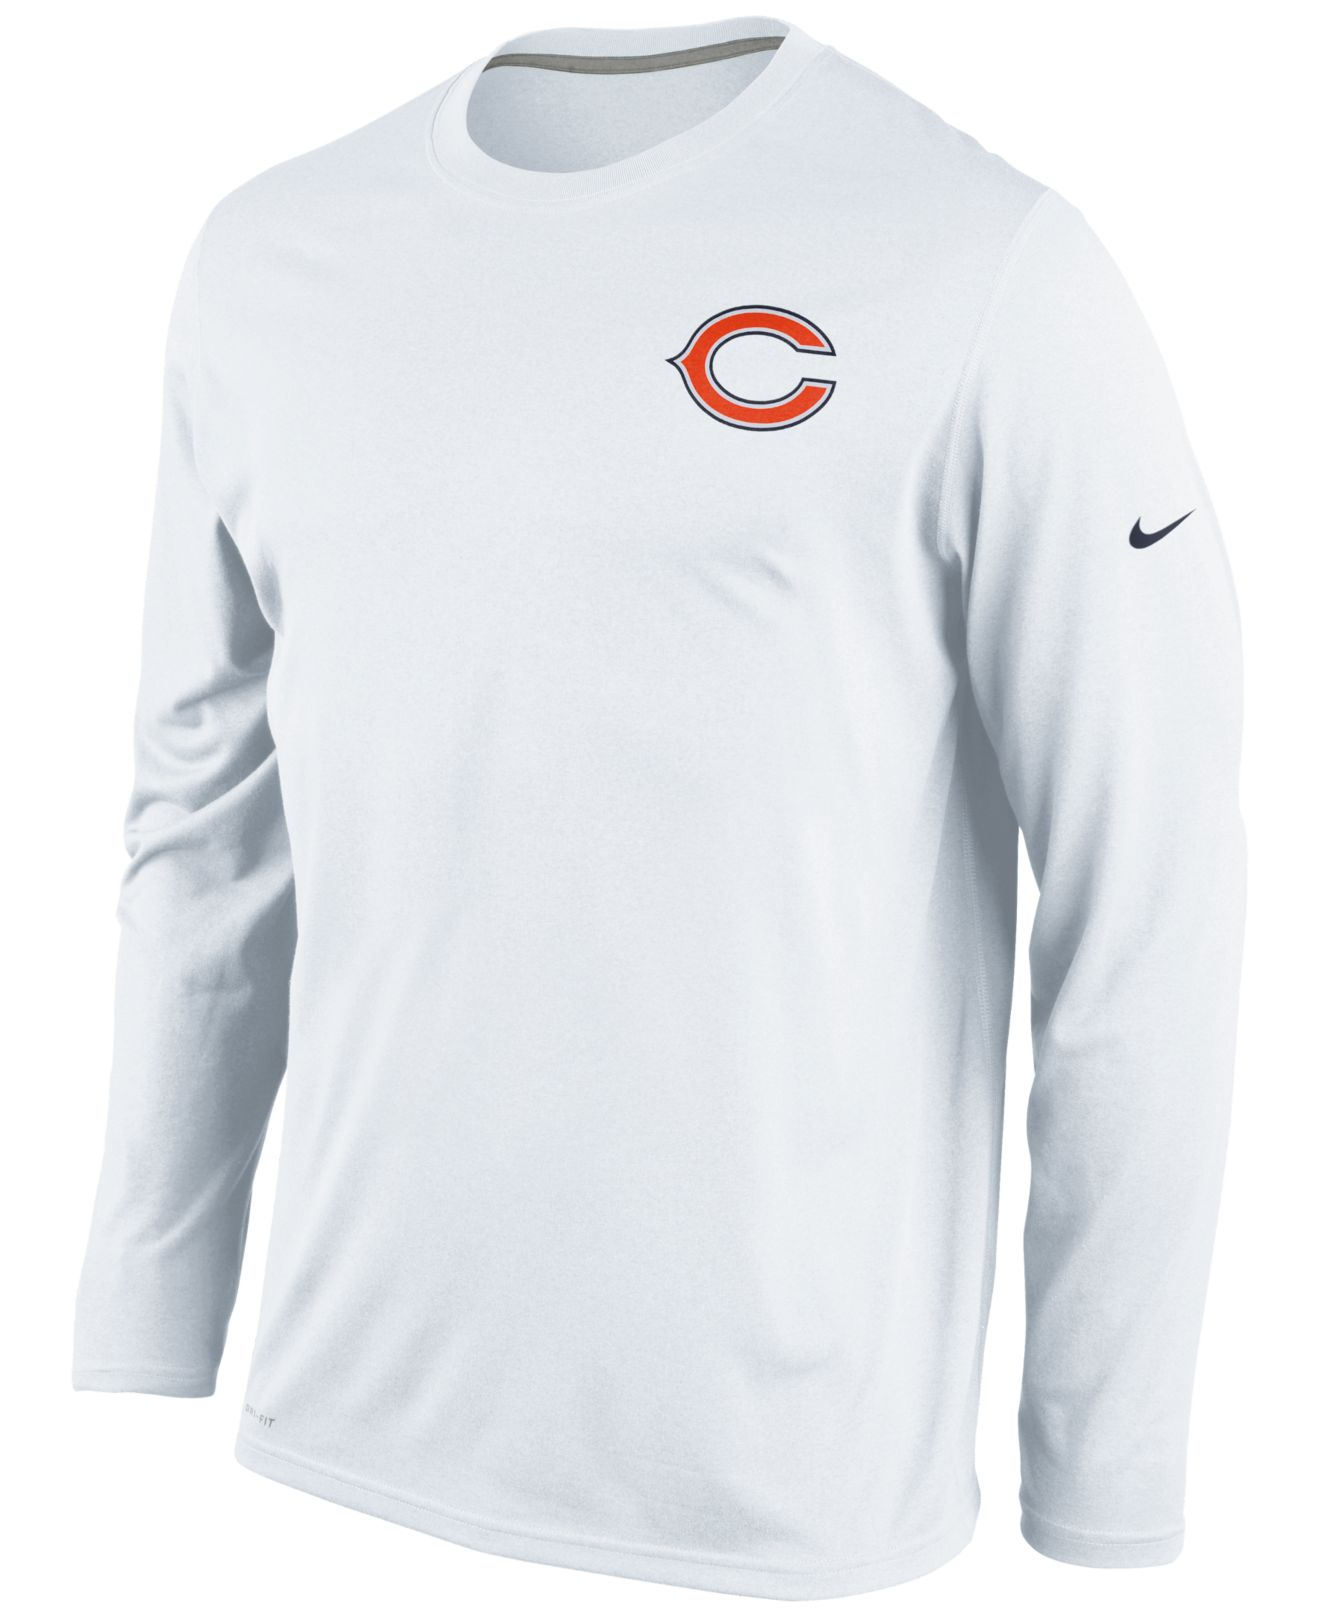 Nike Legend For White Long-sleeve Men's Chicago Men Bears Practice T-shirt baeddcaeabdcfbd|Ernie Adams, Berj Najarian, Sean Harrington, And The Patriots' Other Mystery Men